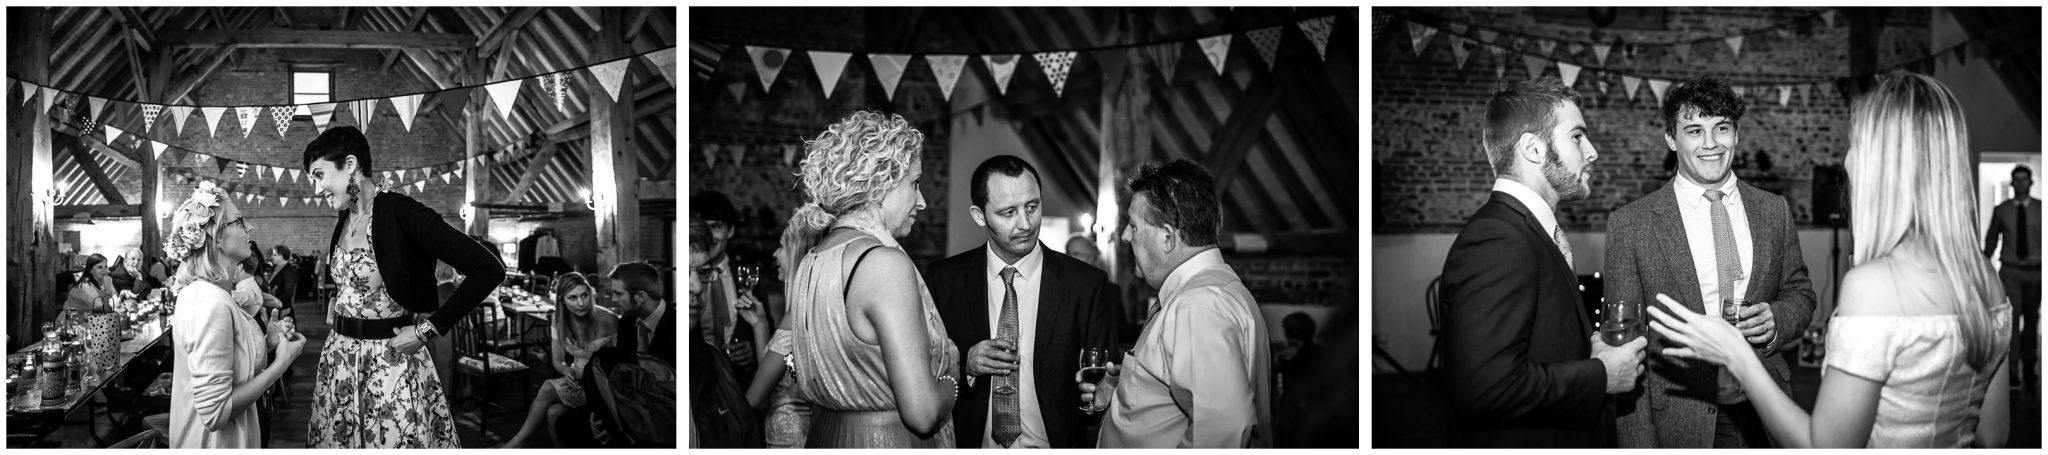 Winchester Great Hall wedding photography black and white guest photos